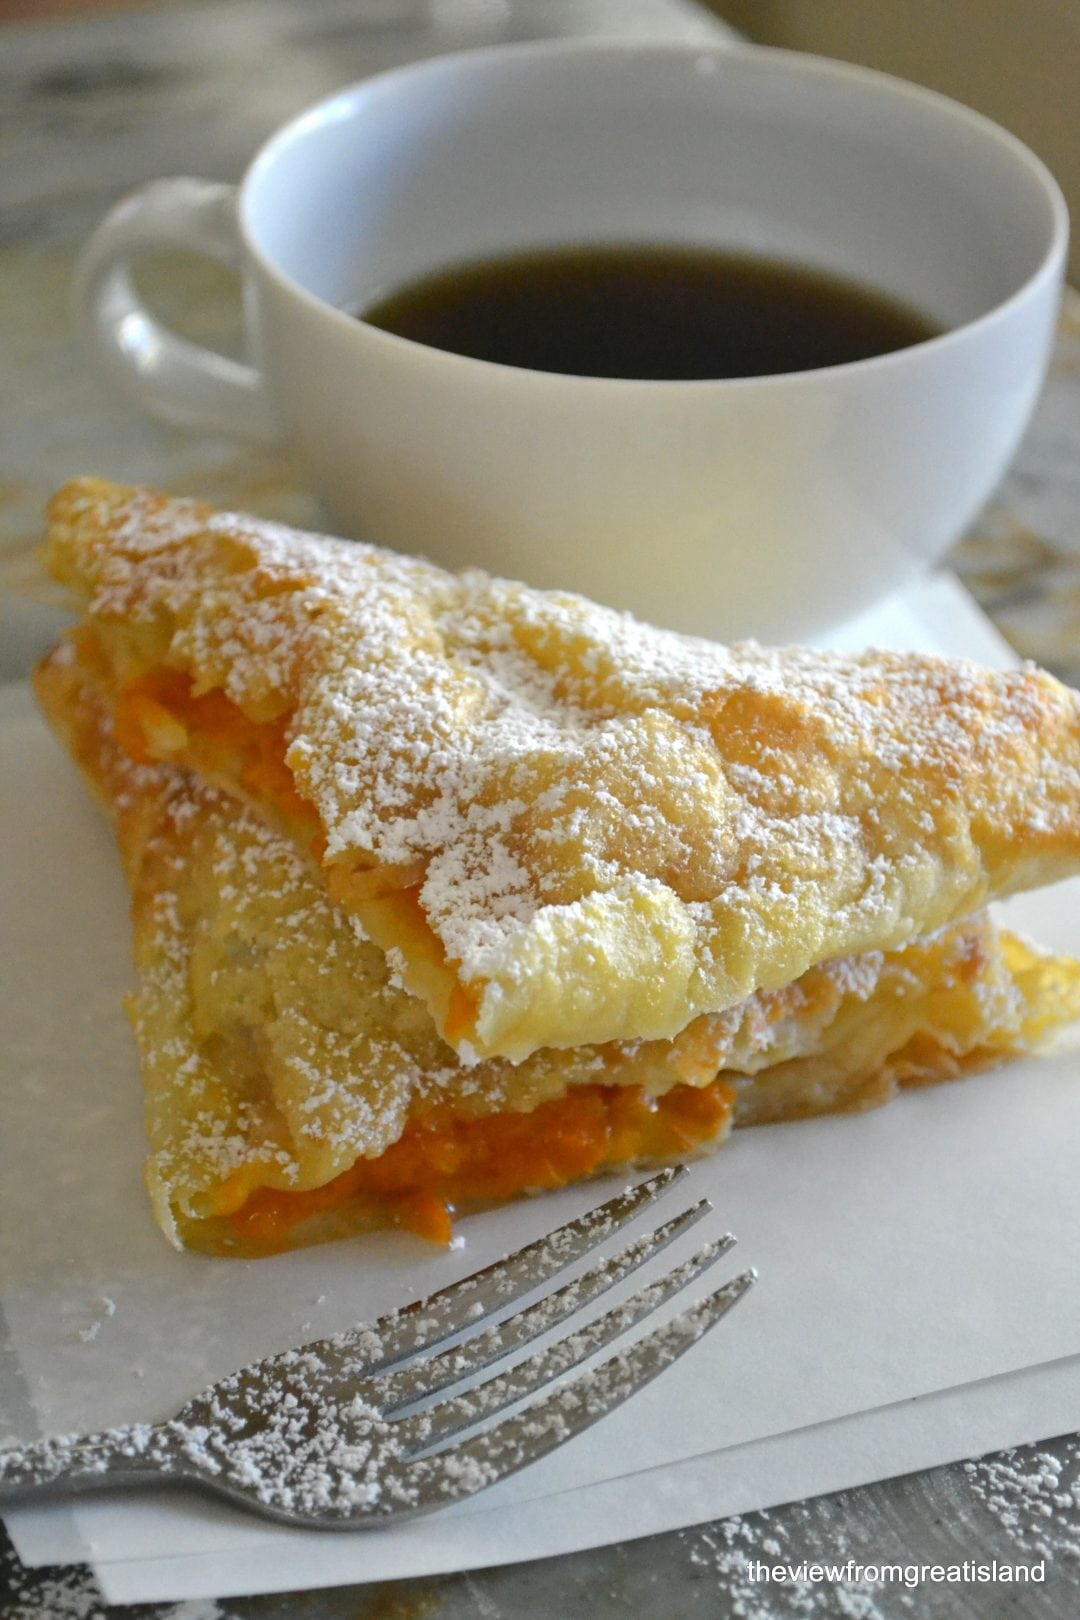 Apricot Turnovers with a cup of coffee and a fork